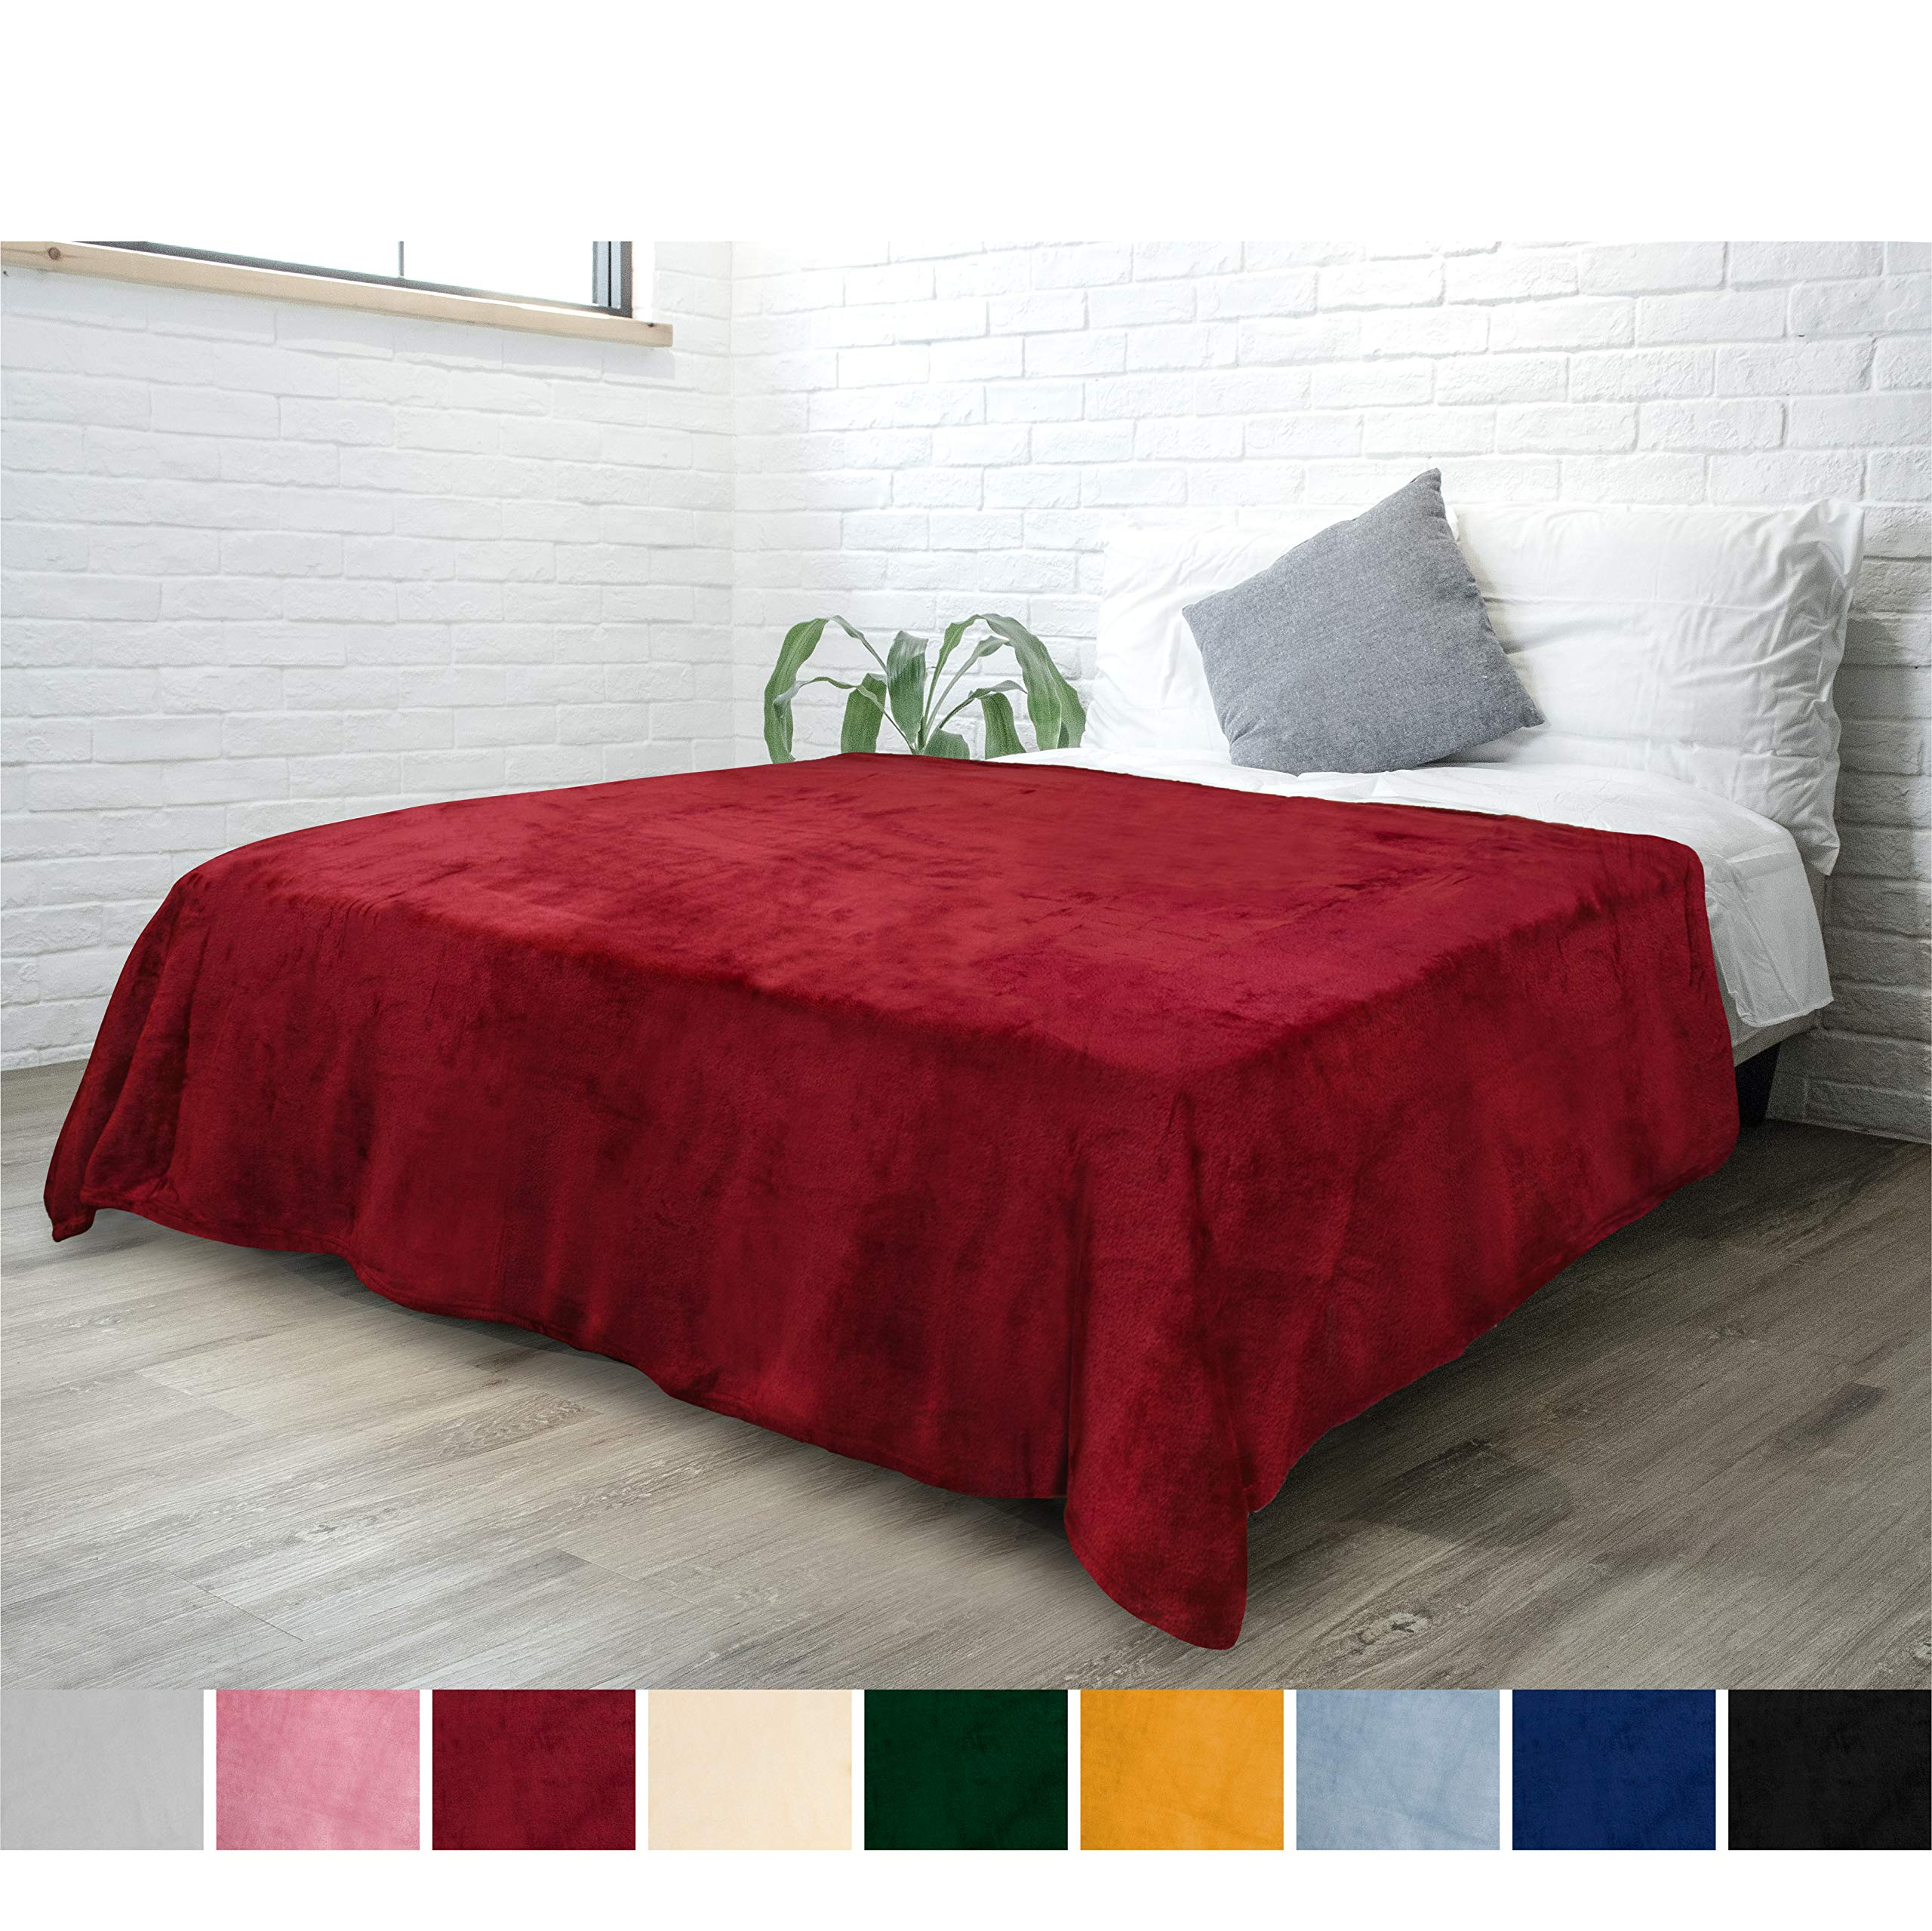 PAVILIA Fleece Blanket Throw Twin Size   Super Soft, Plush, Luxury Flannel Throw   Lightweight Microfiber Blanket for Sofa Couch Bed (Wine, 60x80 inches)